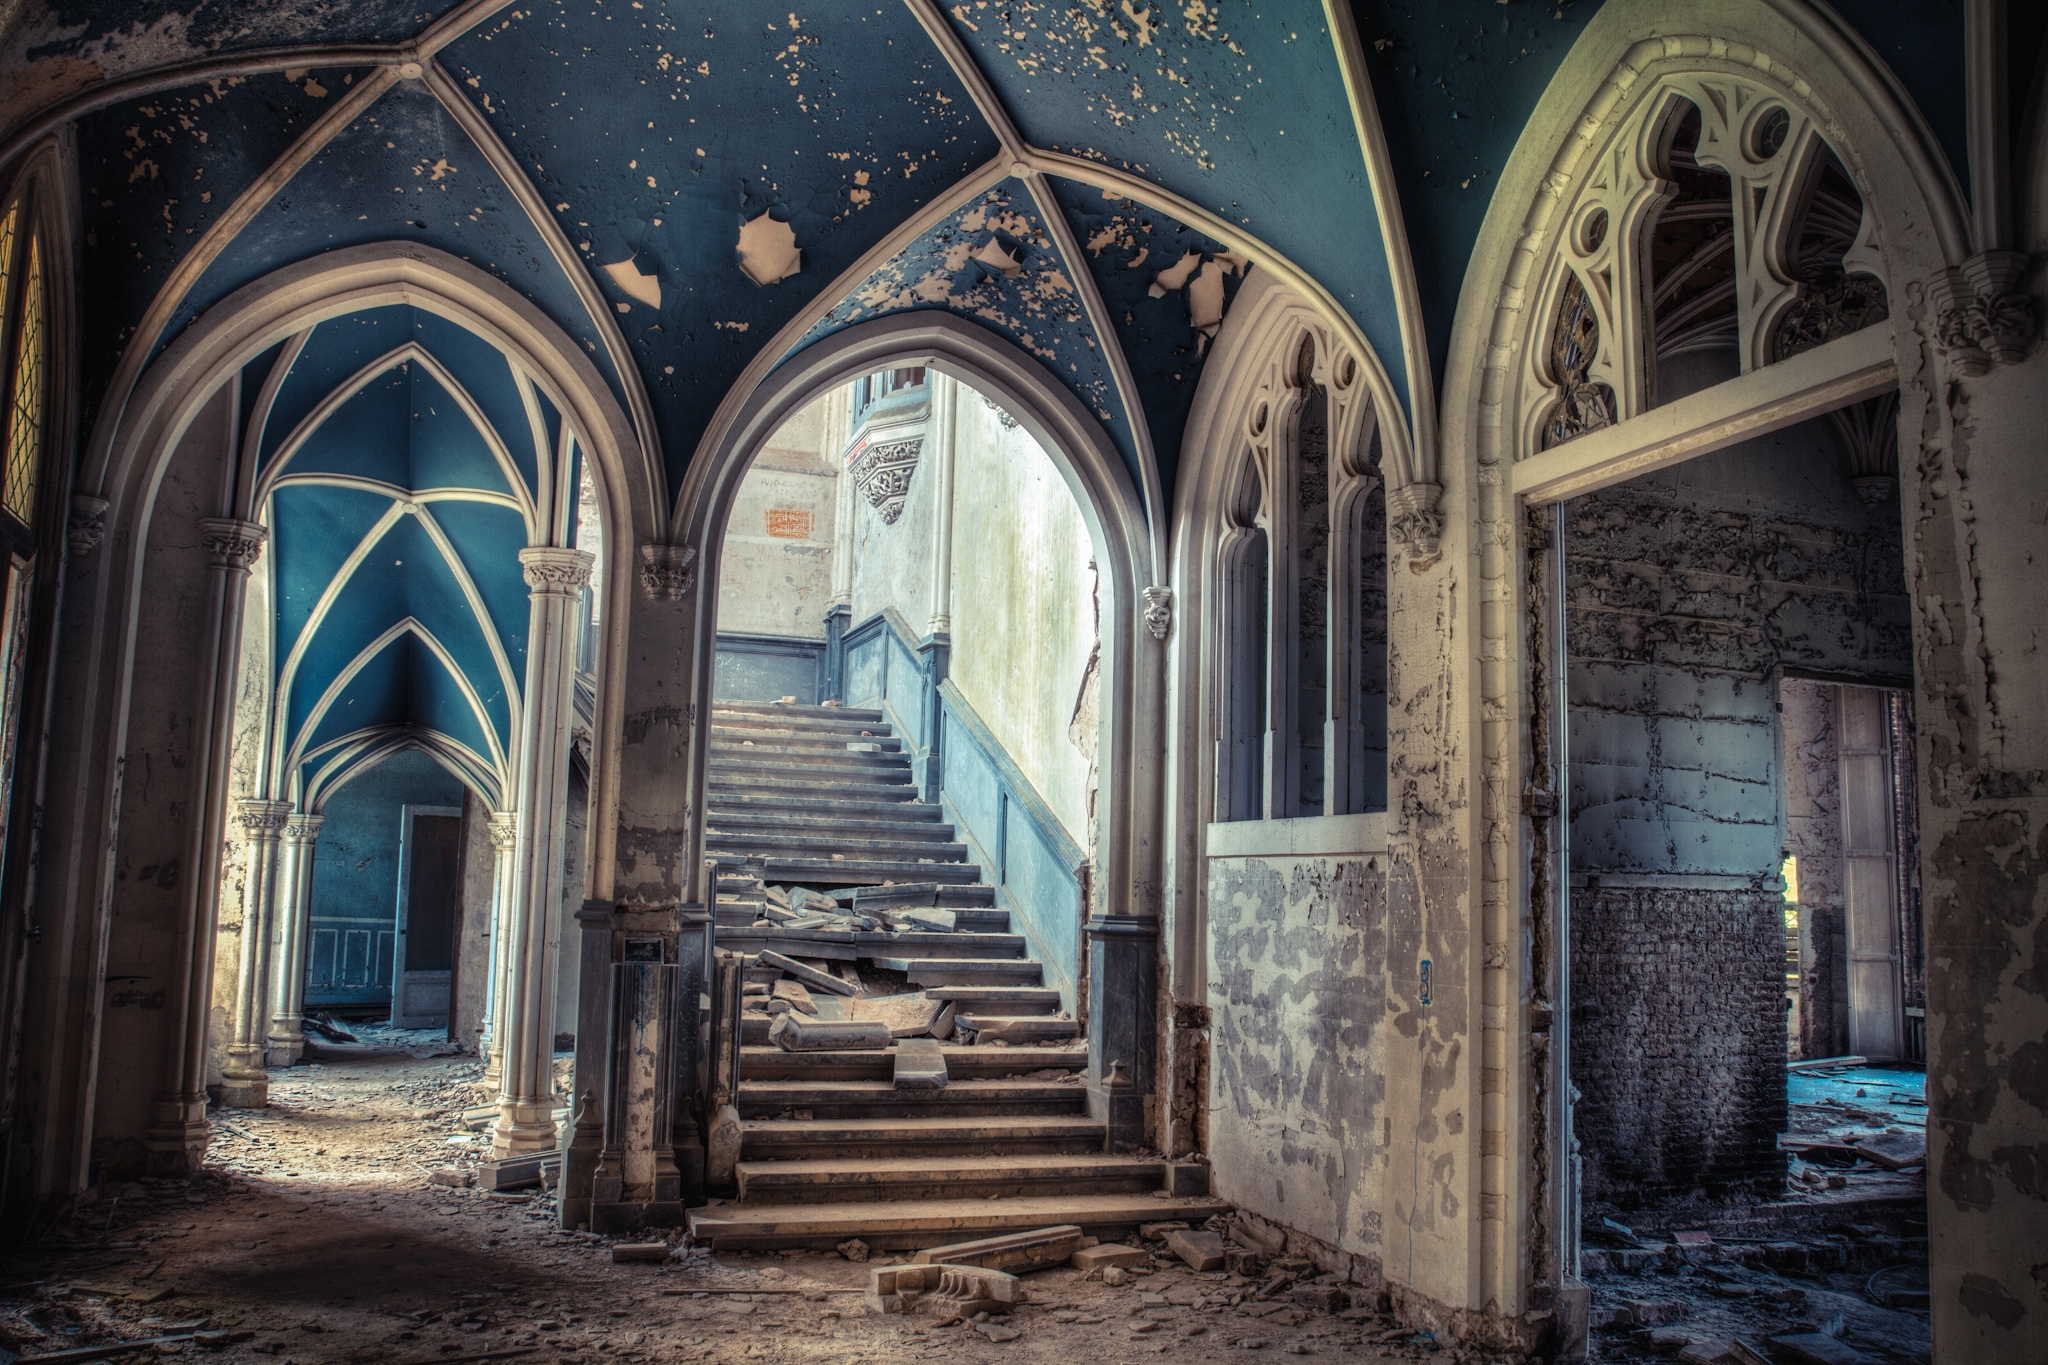 87450 download wallpaper Building, Miscellanea, Miscellaneous, Old, Stairs, Ladder, Arch, Doors, Door, Ancient, Entrance screensavers and pictures for free